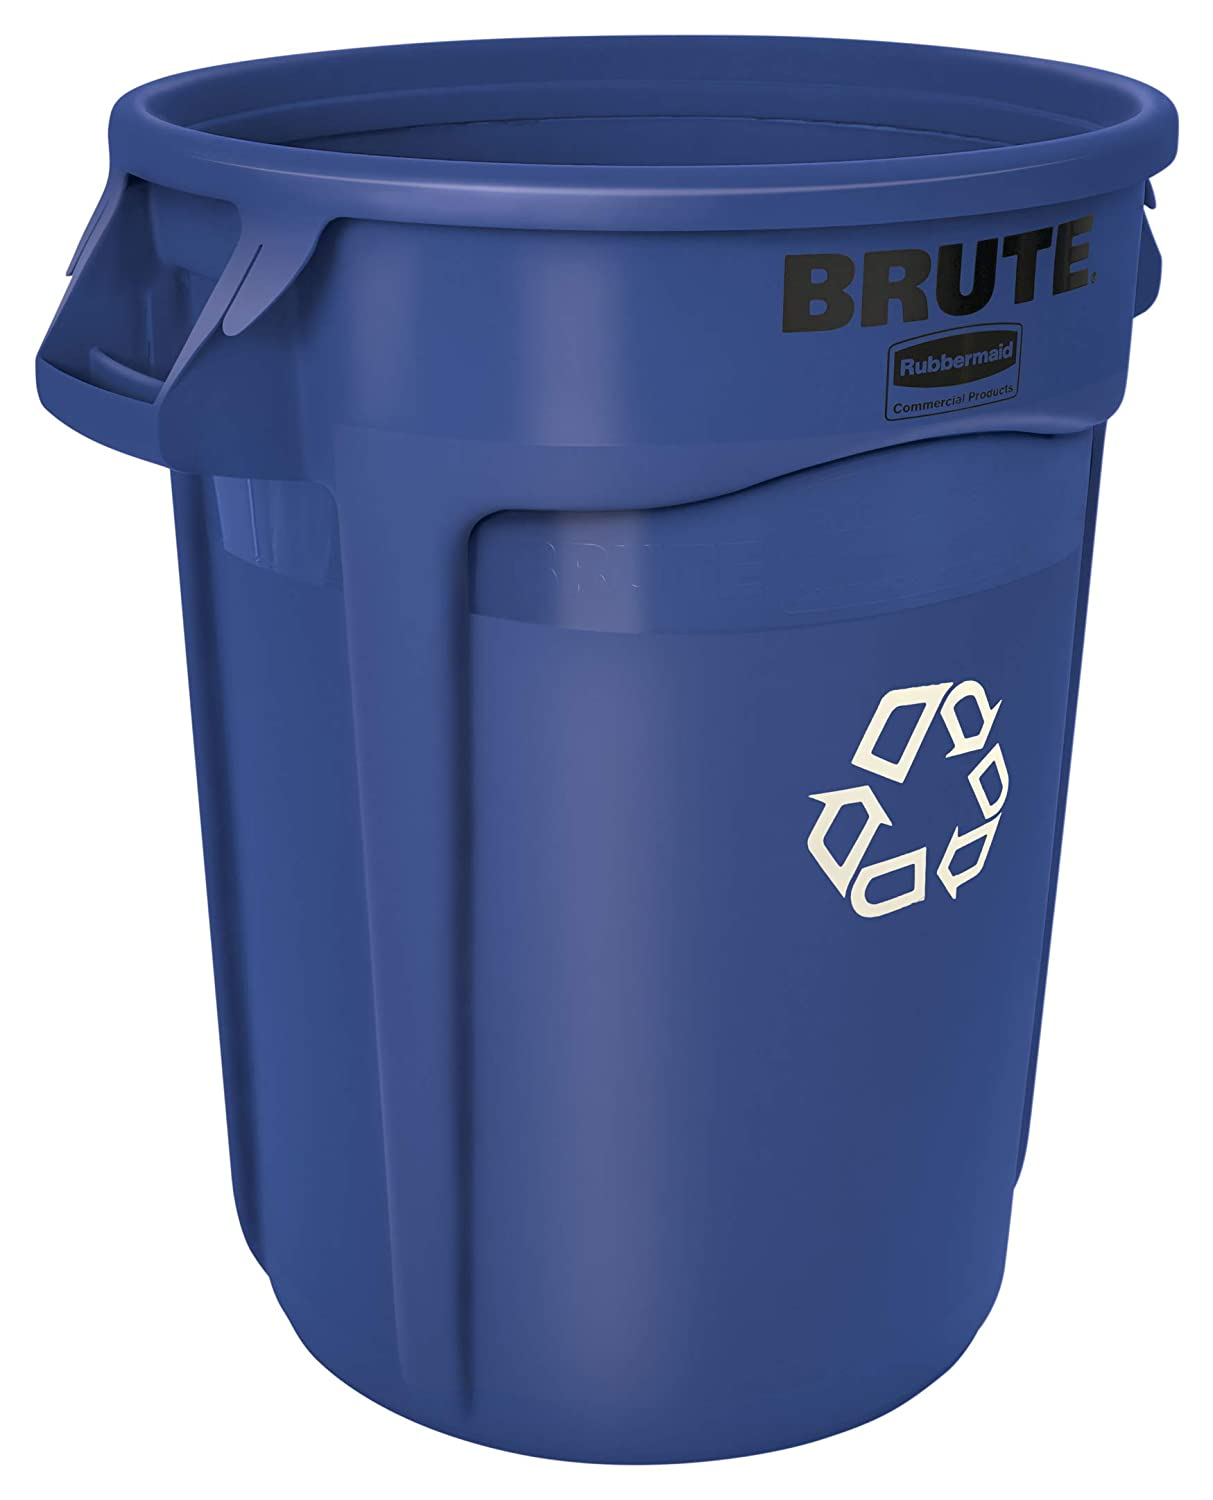 Rubbermaid Commercial Products FG262073BLUE BRUTE Heavy-Duty Round Recycling/Composting Bin, 20-Gallon, Blue Recycling